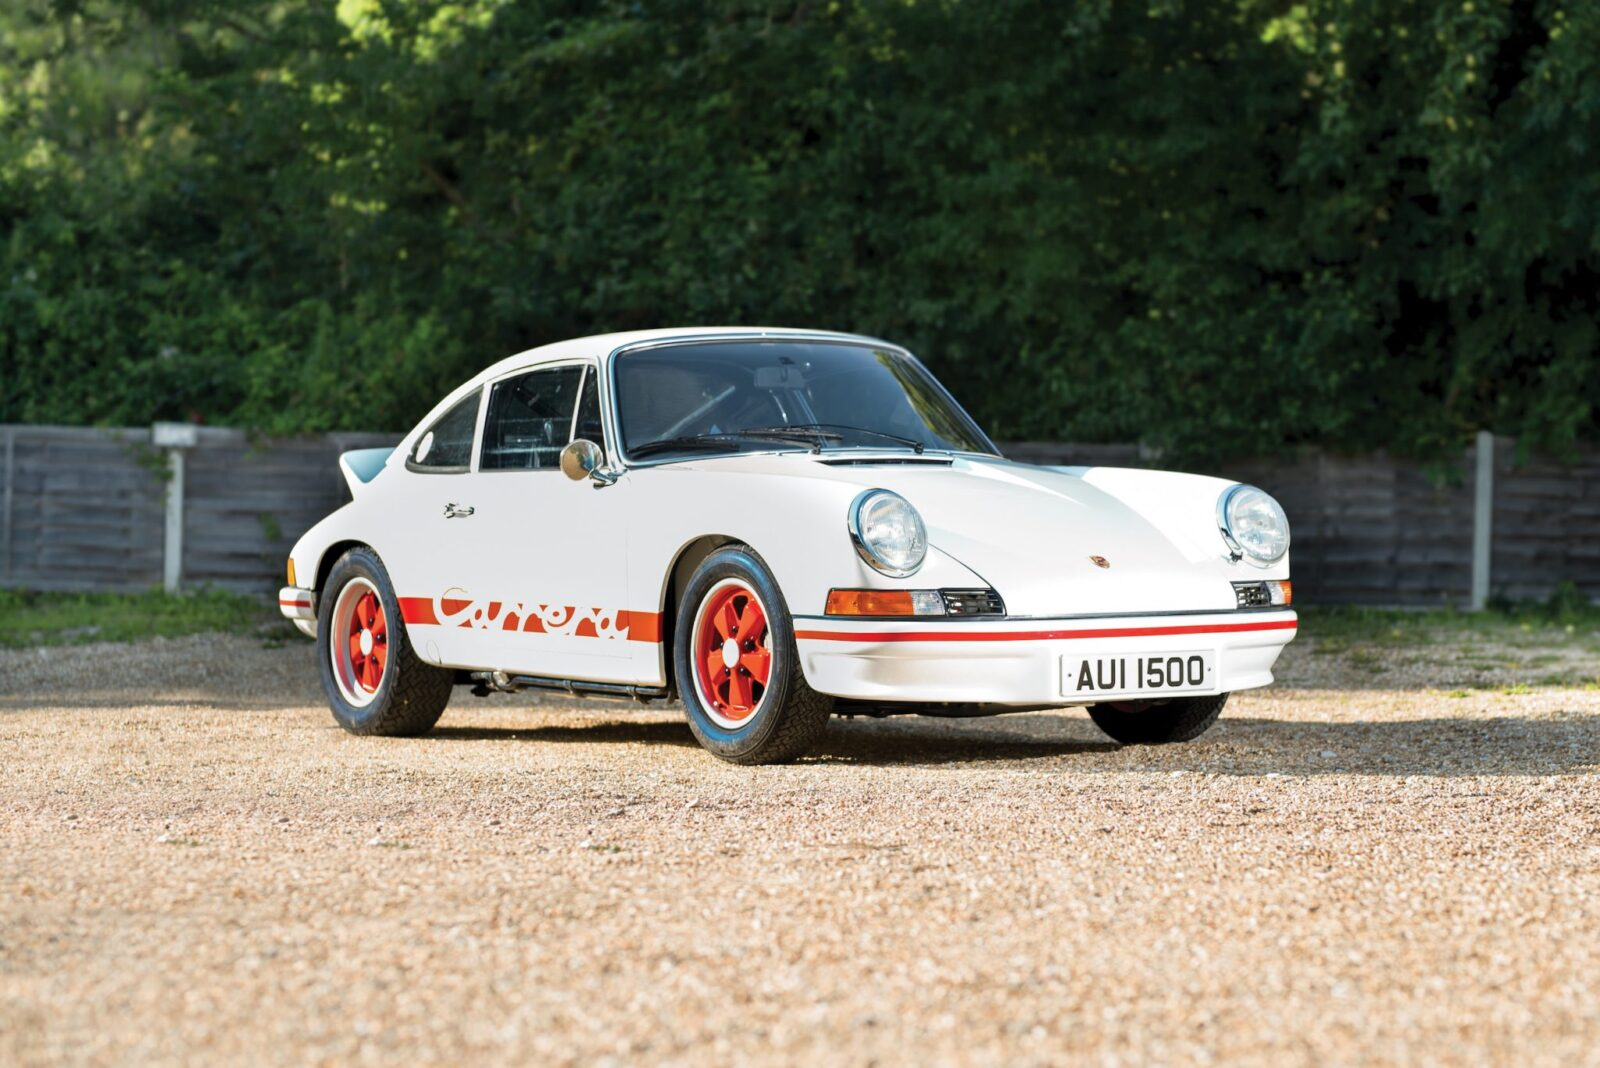 Porsche 911 Carrera RS 2.7 15 1600x1068 - 1973 Porsche 911 Carrera RS 2.7 Lightweight